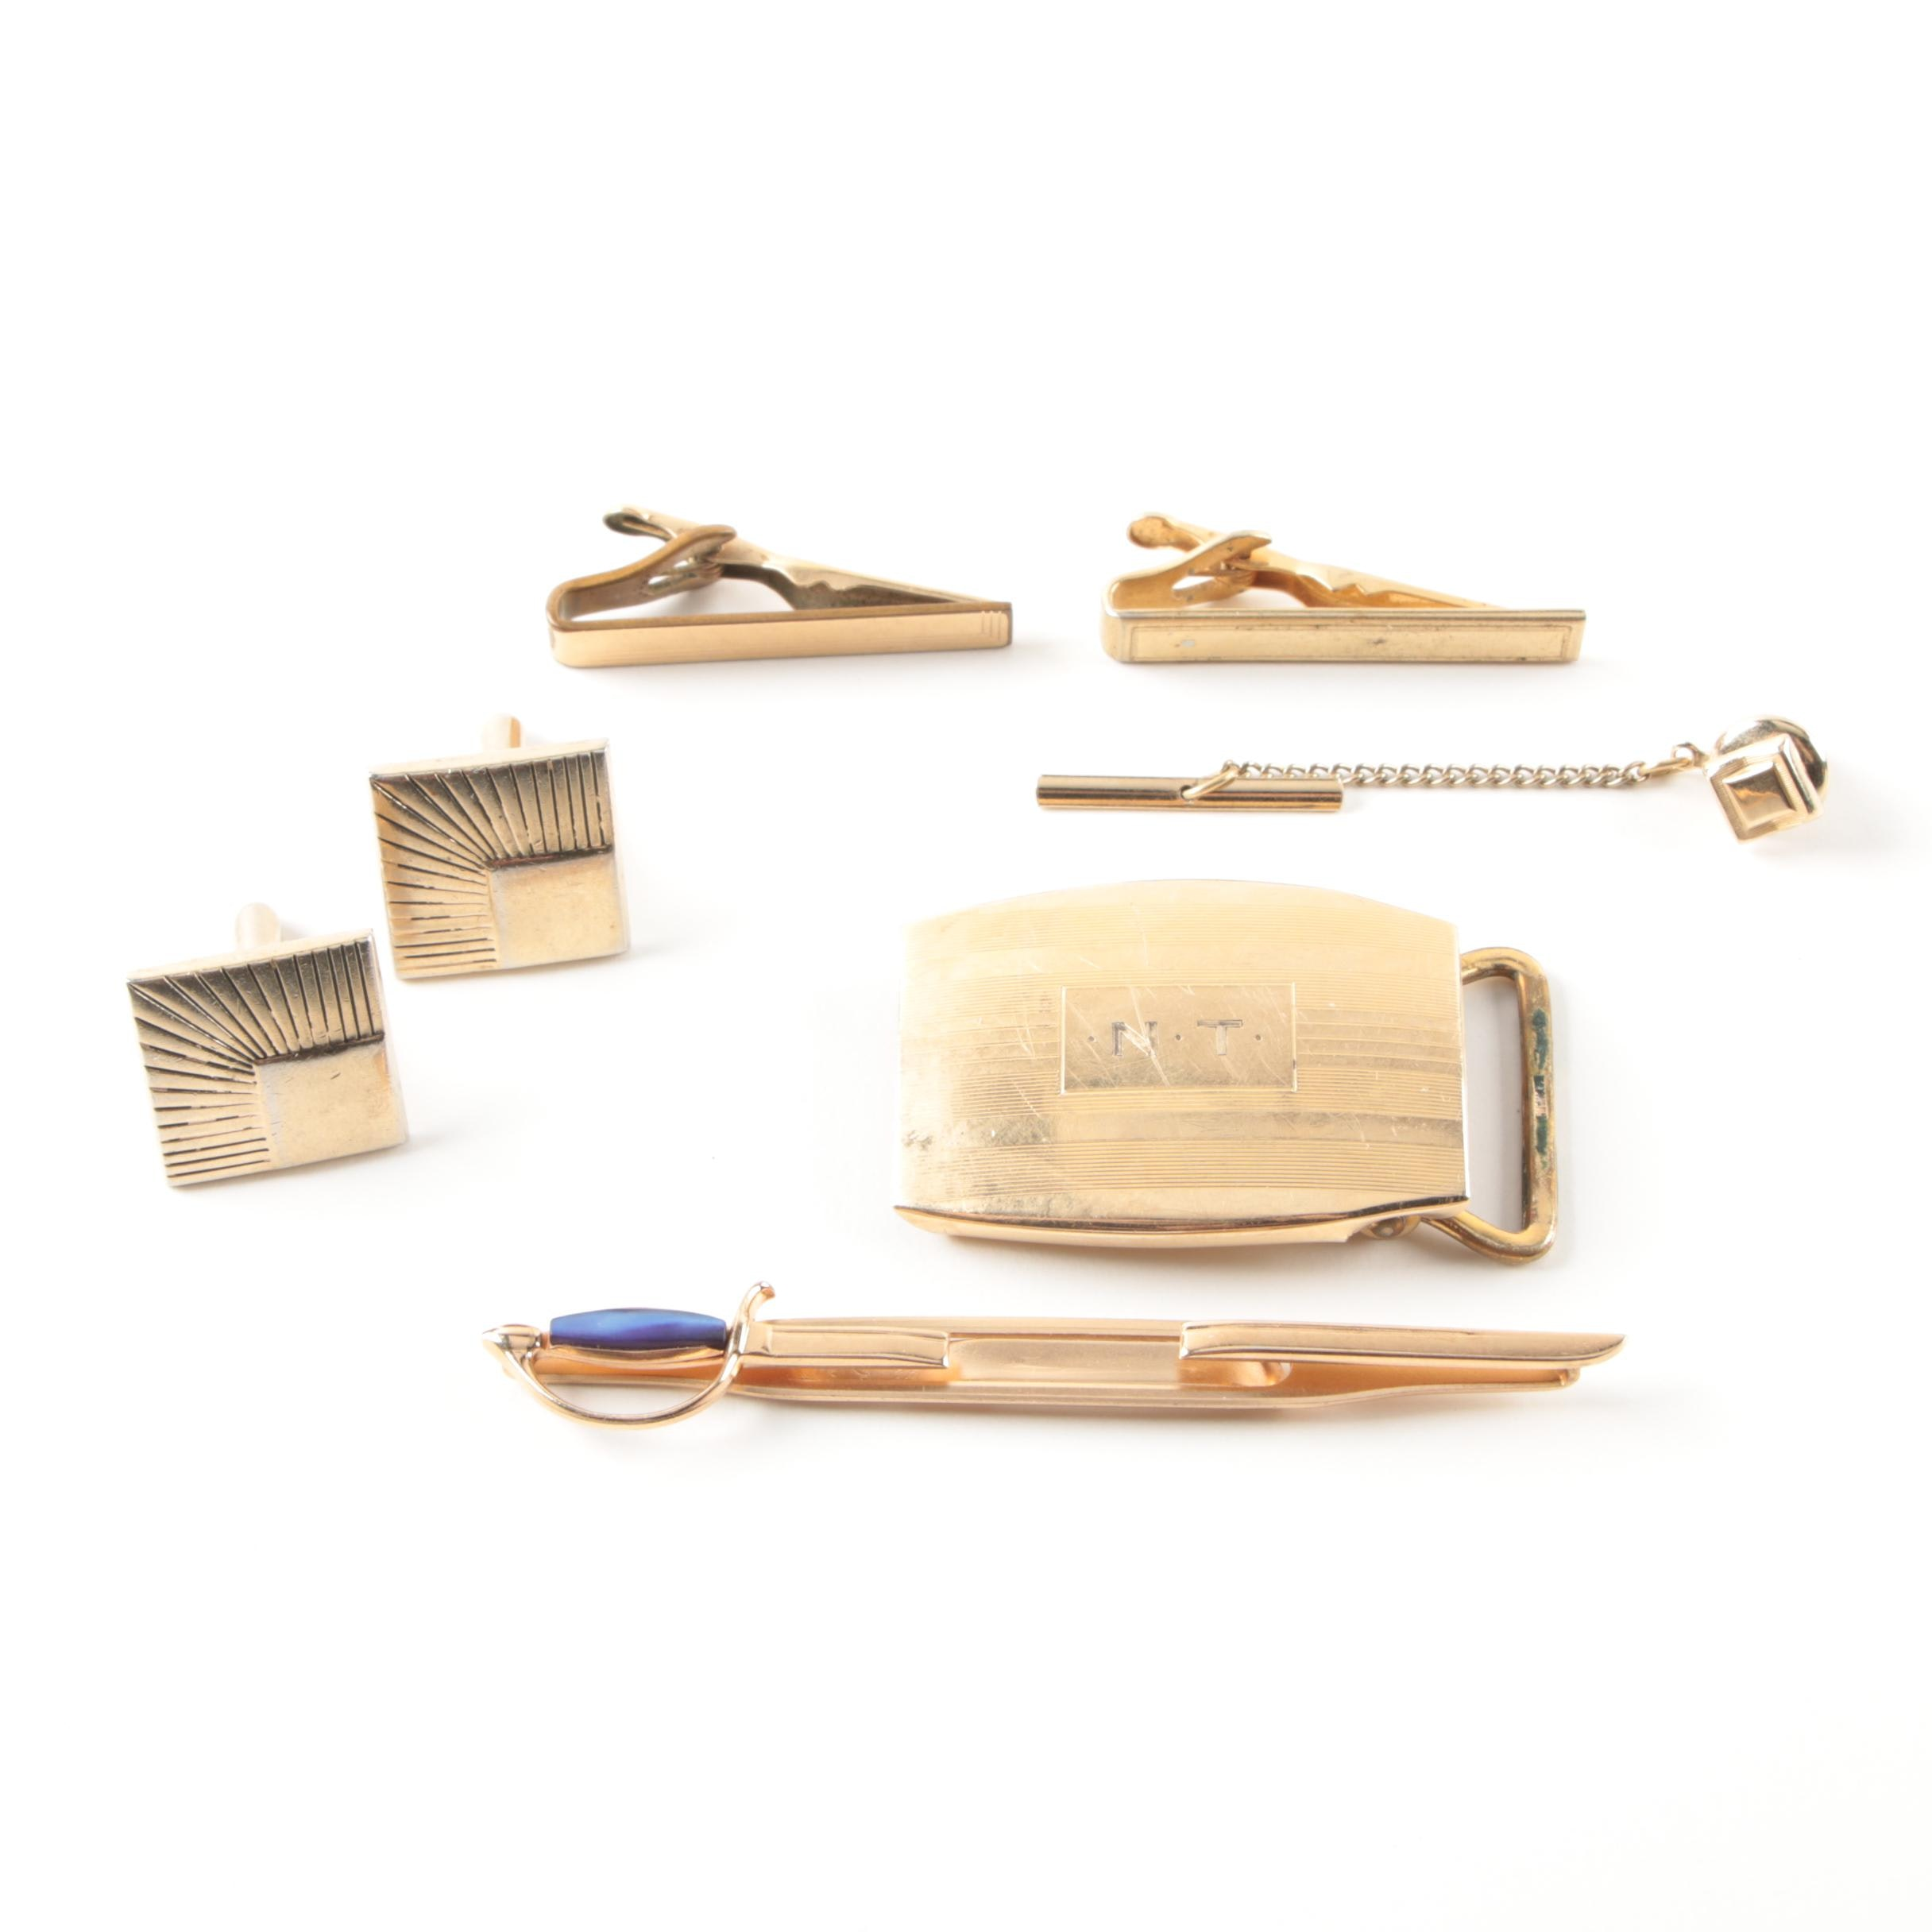 Assortment of Jewelry Including Cufflinks and Swank